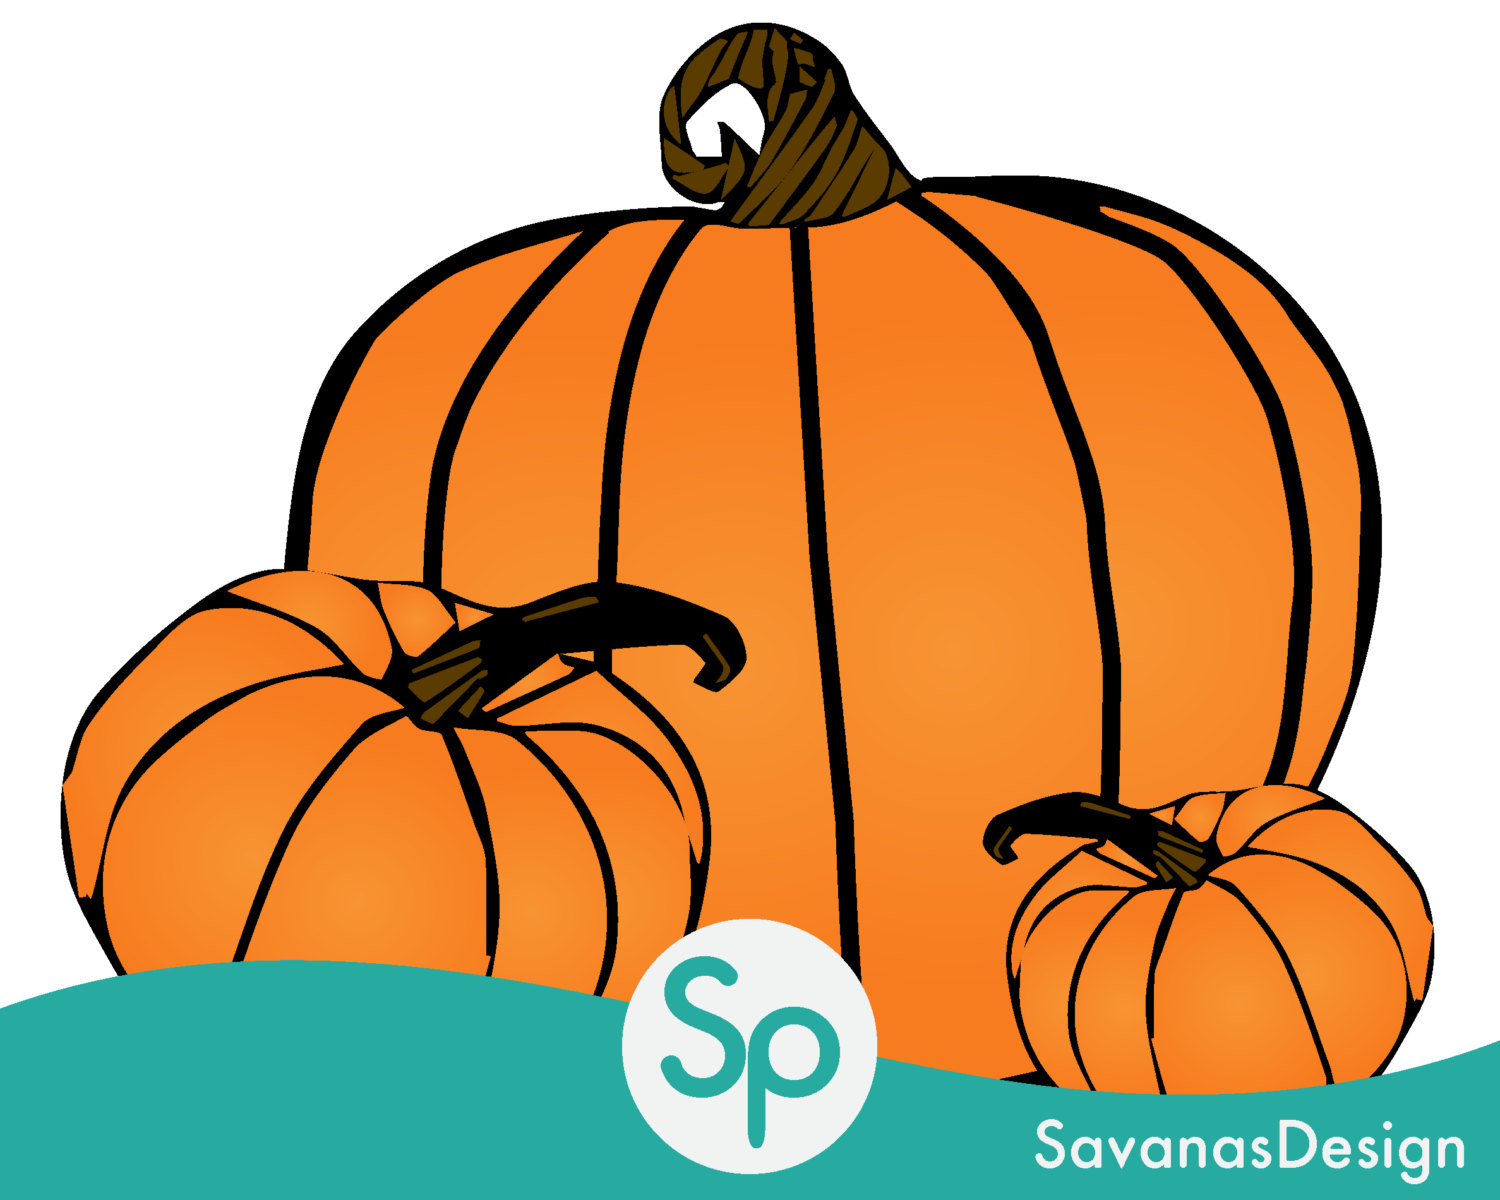 Pumpkin Clip Art, Pumpkin Vector, Pumpkin Decorating, Pumpkin Wall.